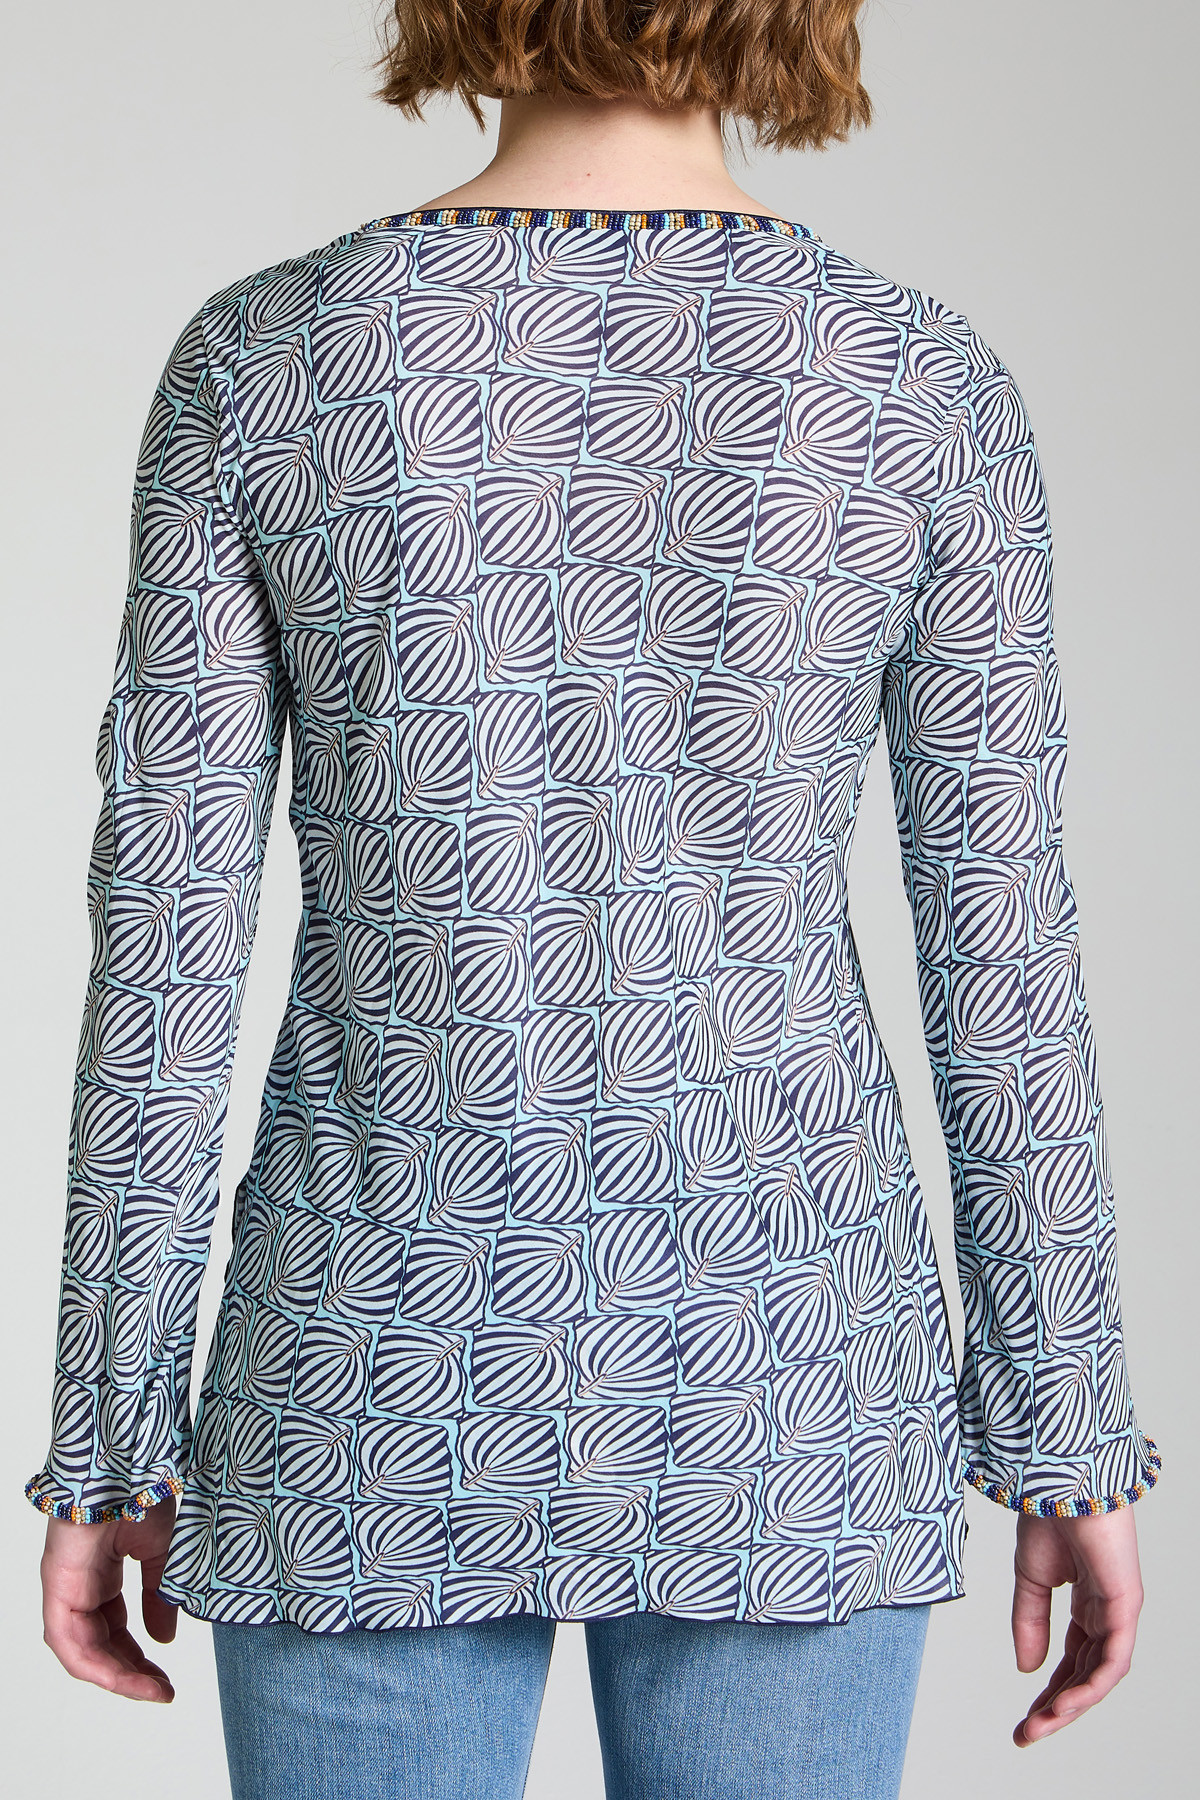 Women's Clothing Sweater Geometric Palms Shirt with Blue Patterned V-Neck Maliparmi | Shirts and tops | JM447750551C8047